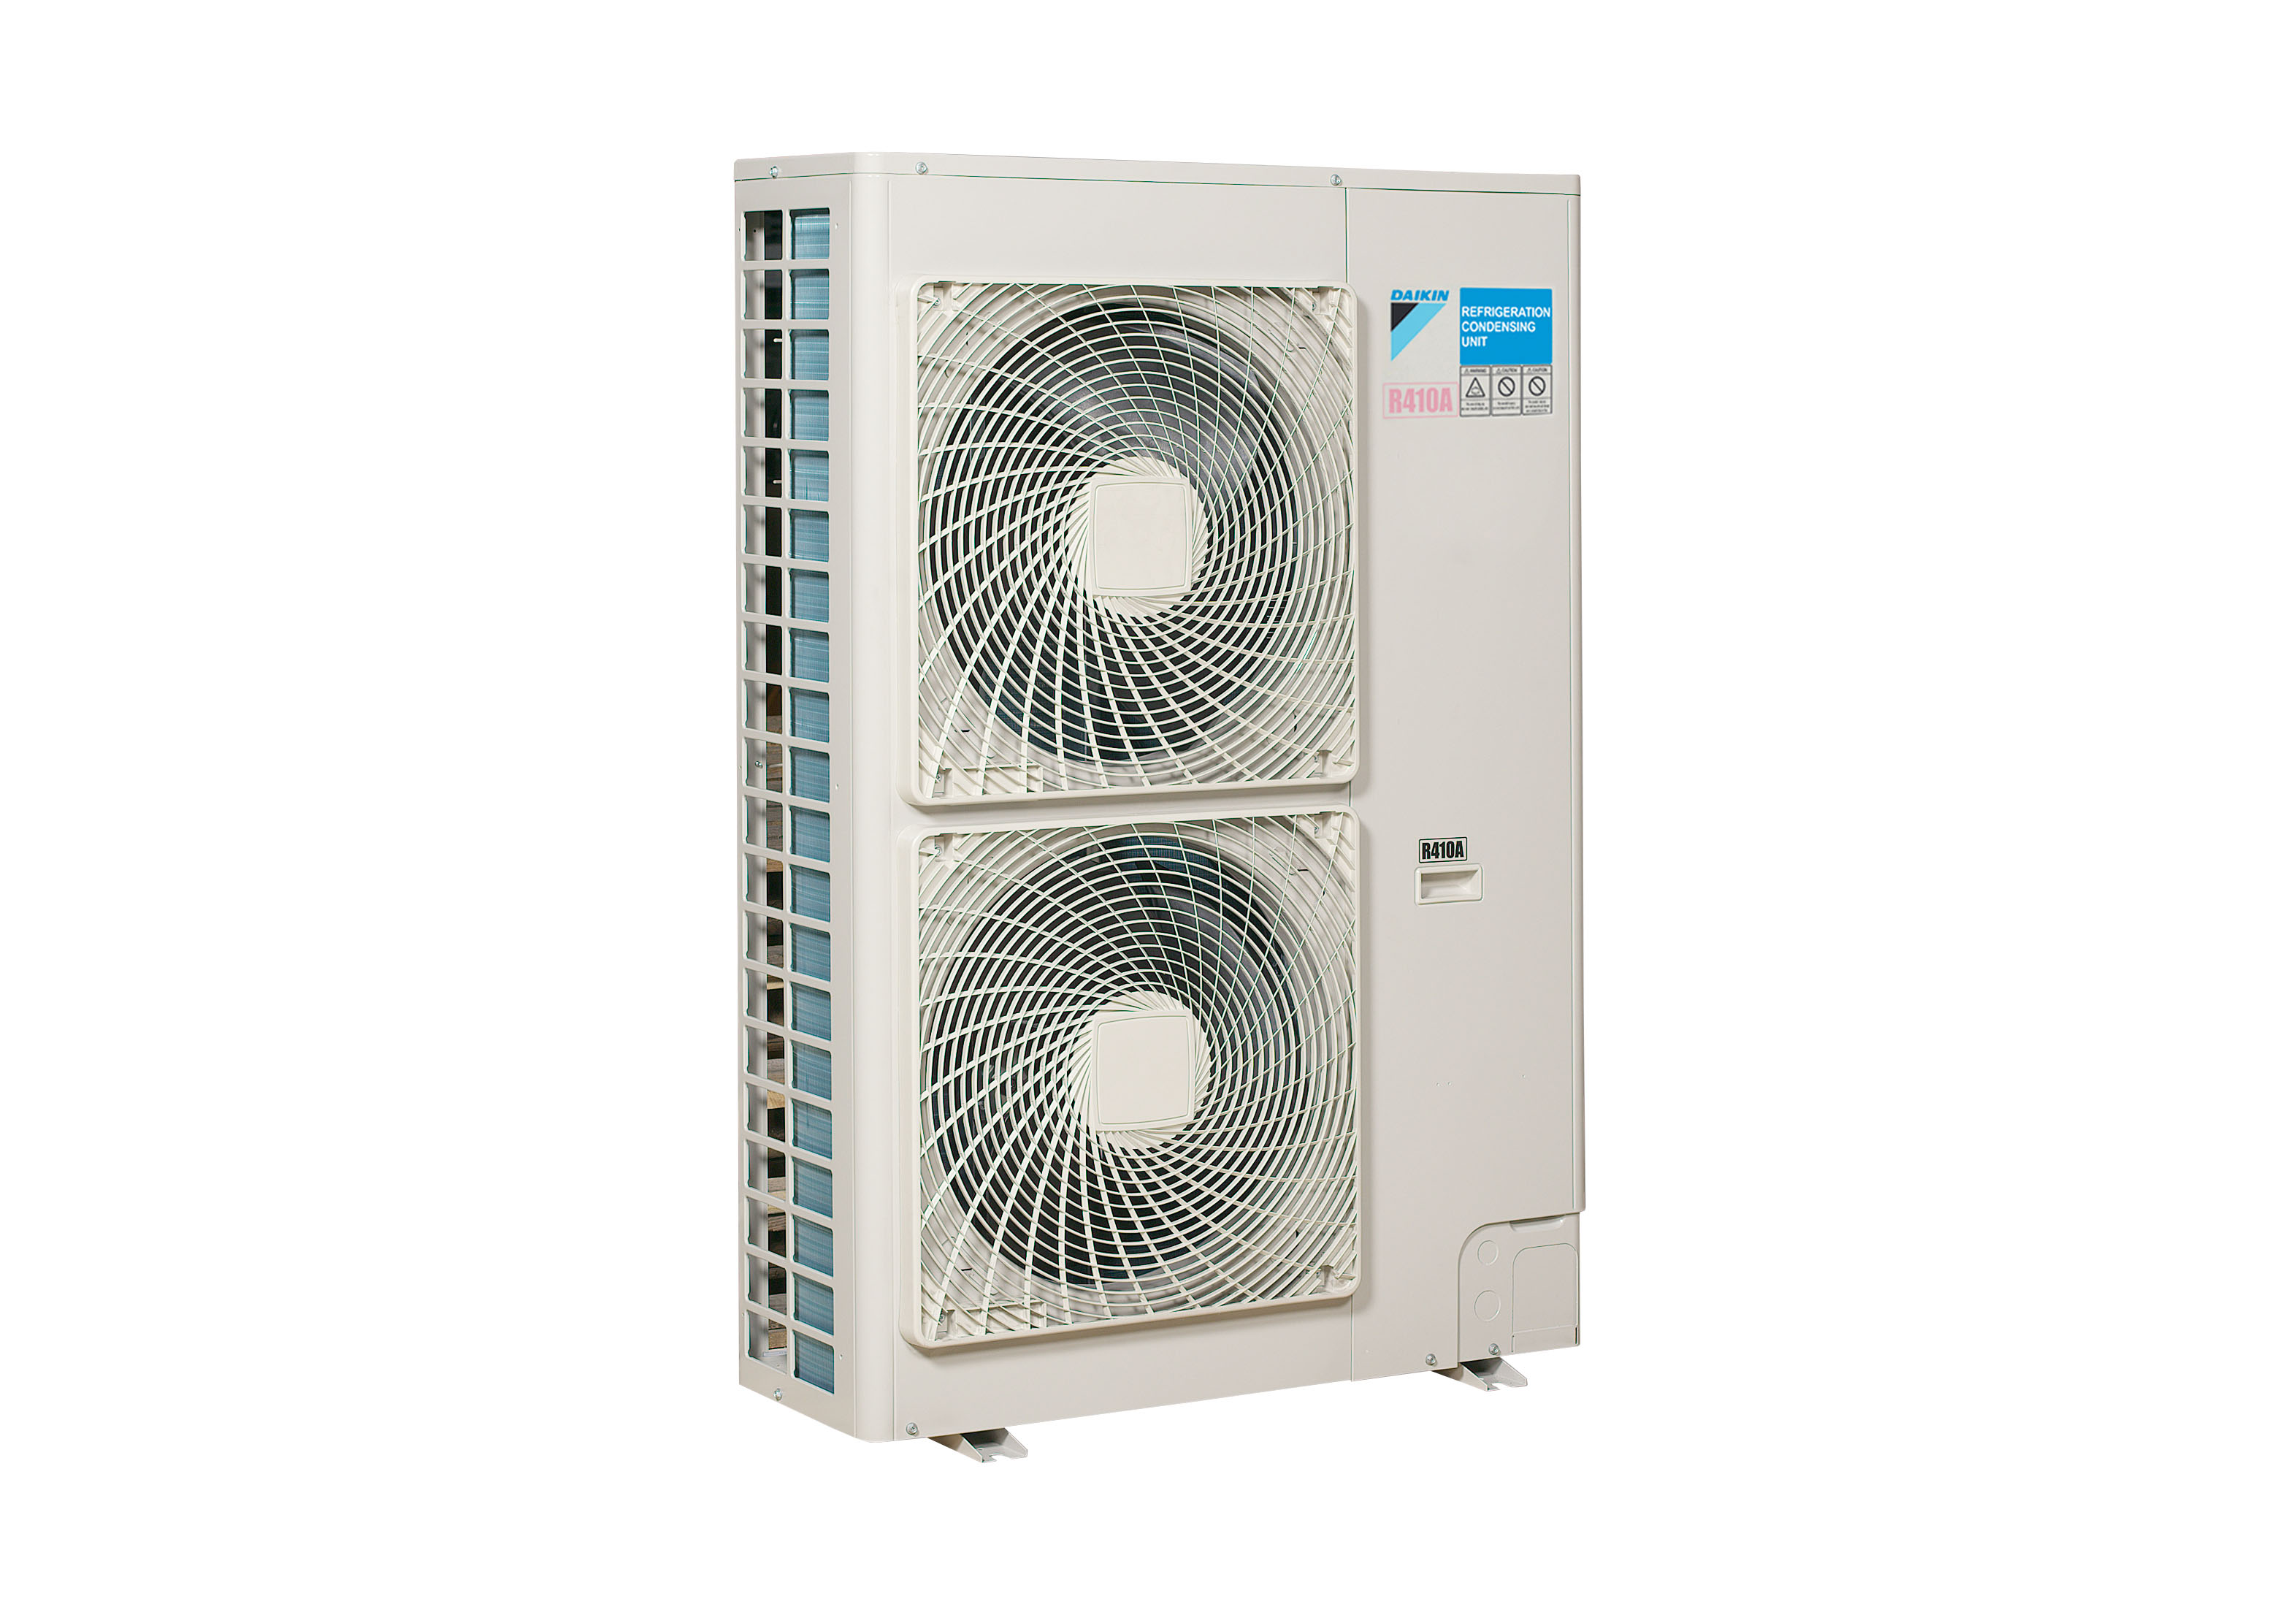 Daikin launches its most compact refrigeration solution - the Mini